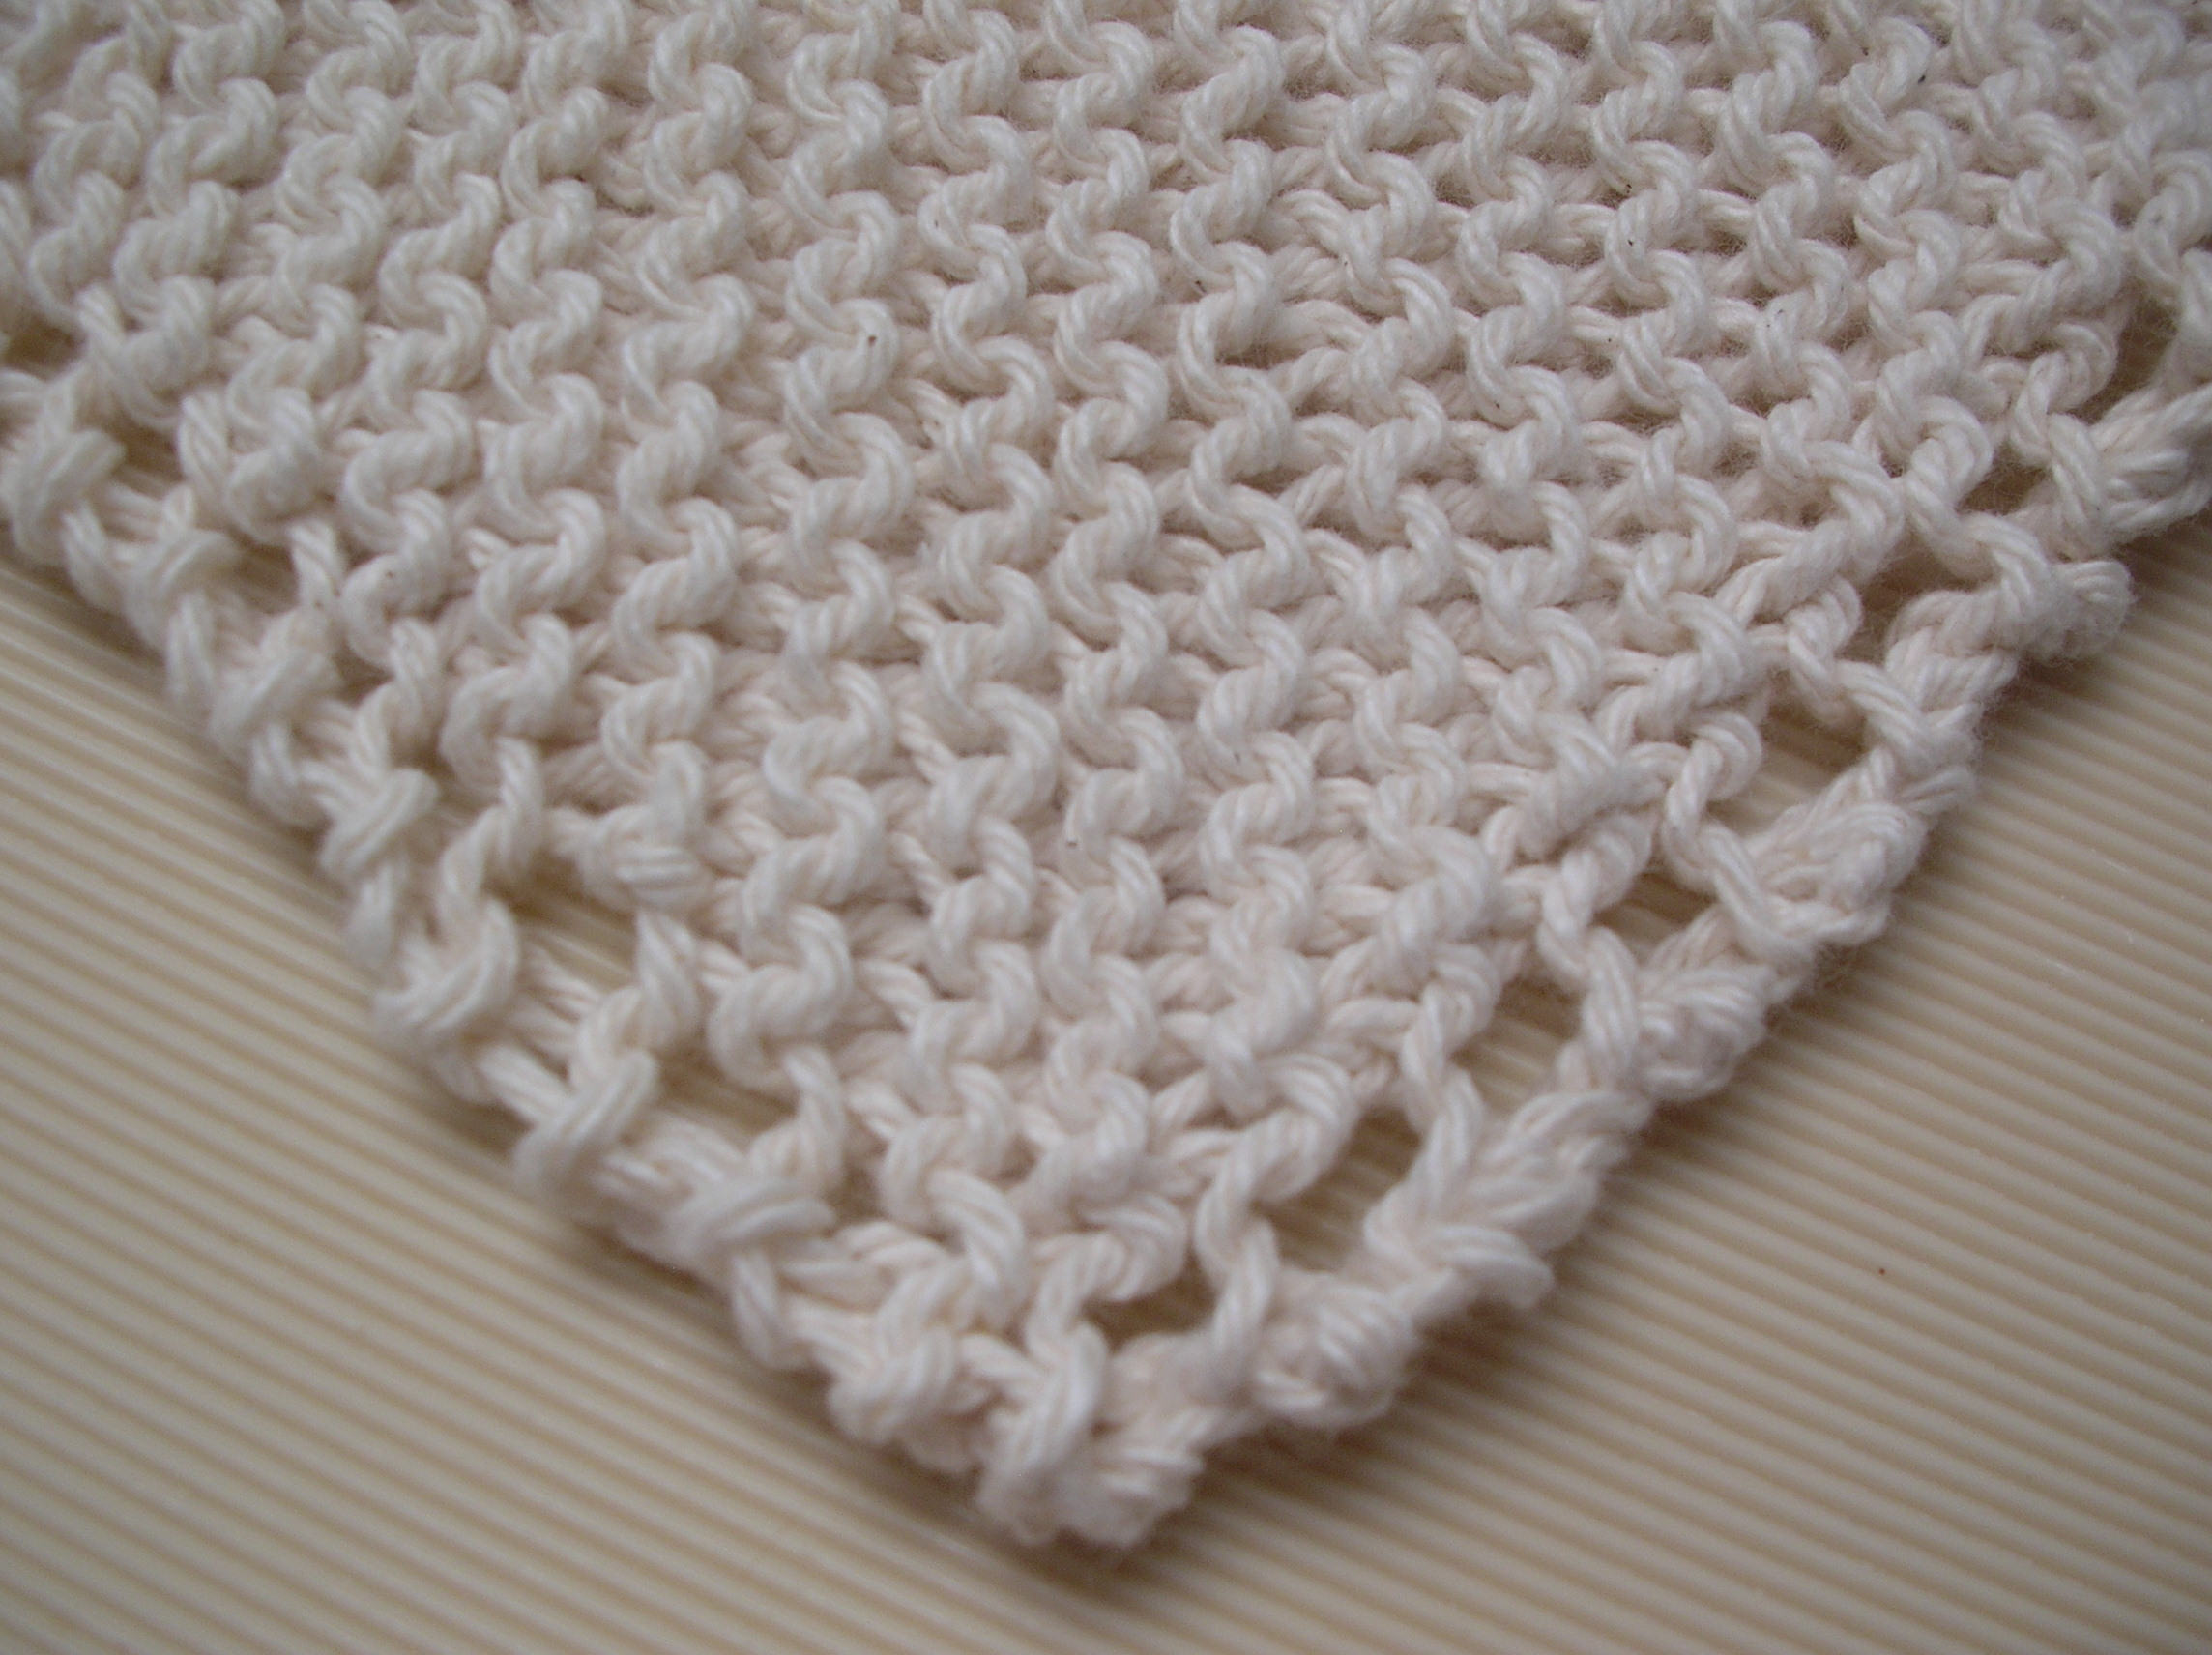 Crochet Patterns In Cotton : 34 New Crochet Dishcloth Patterns For Free Patterns Hub